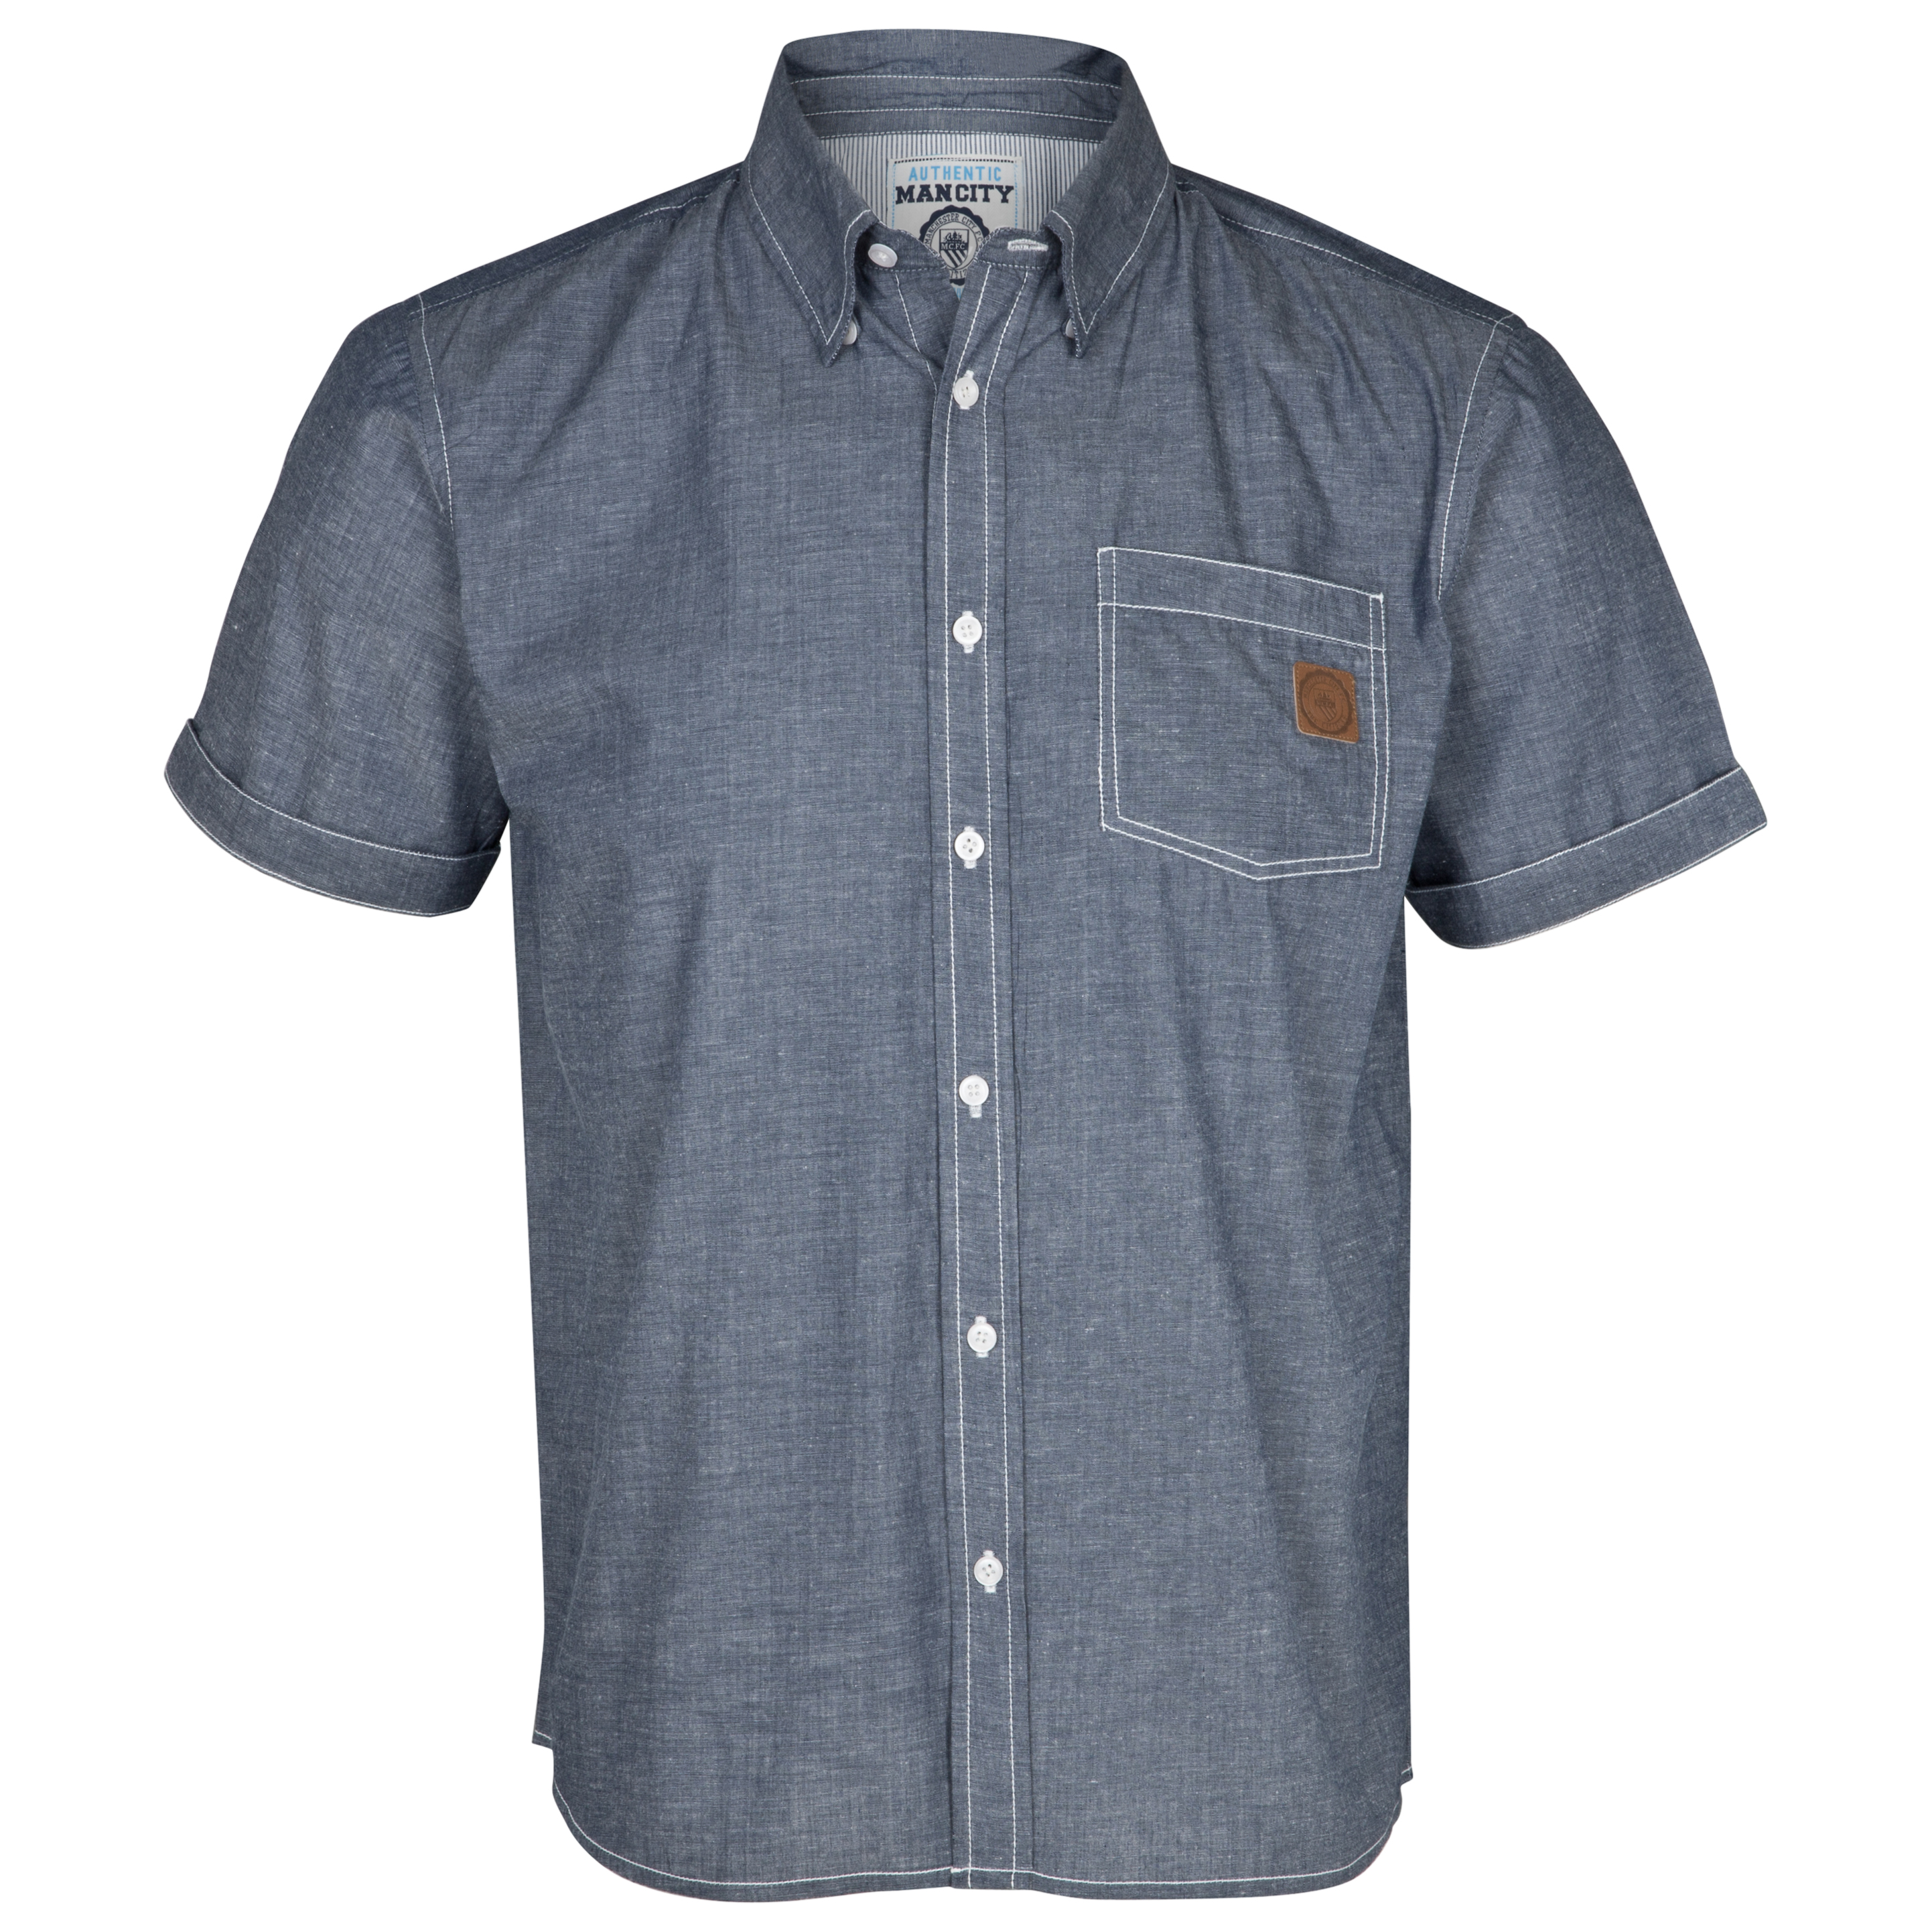 Manchester City Chambray Shirt - Light Blue